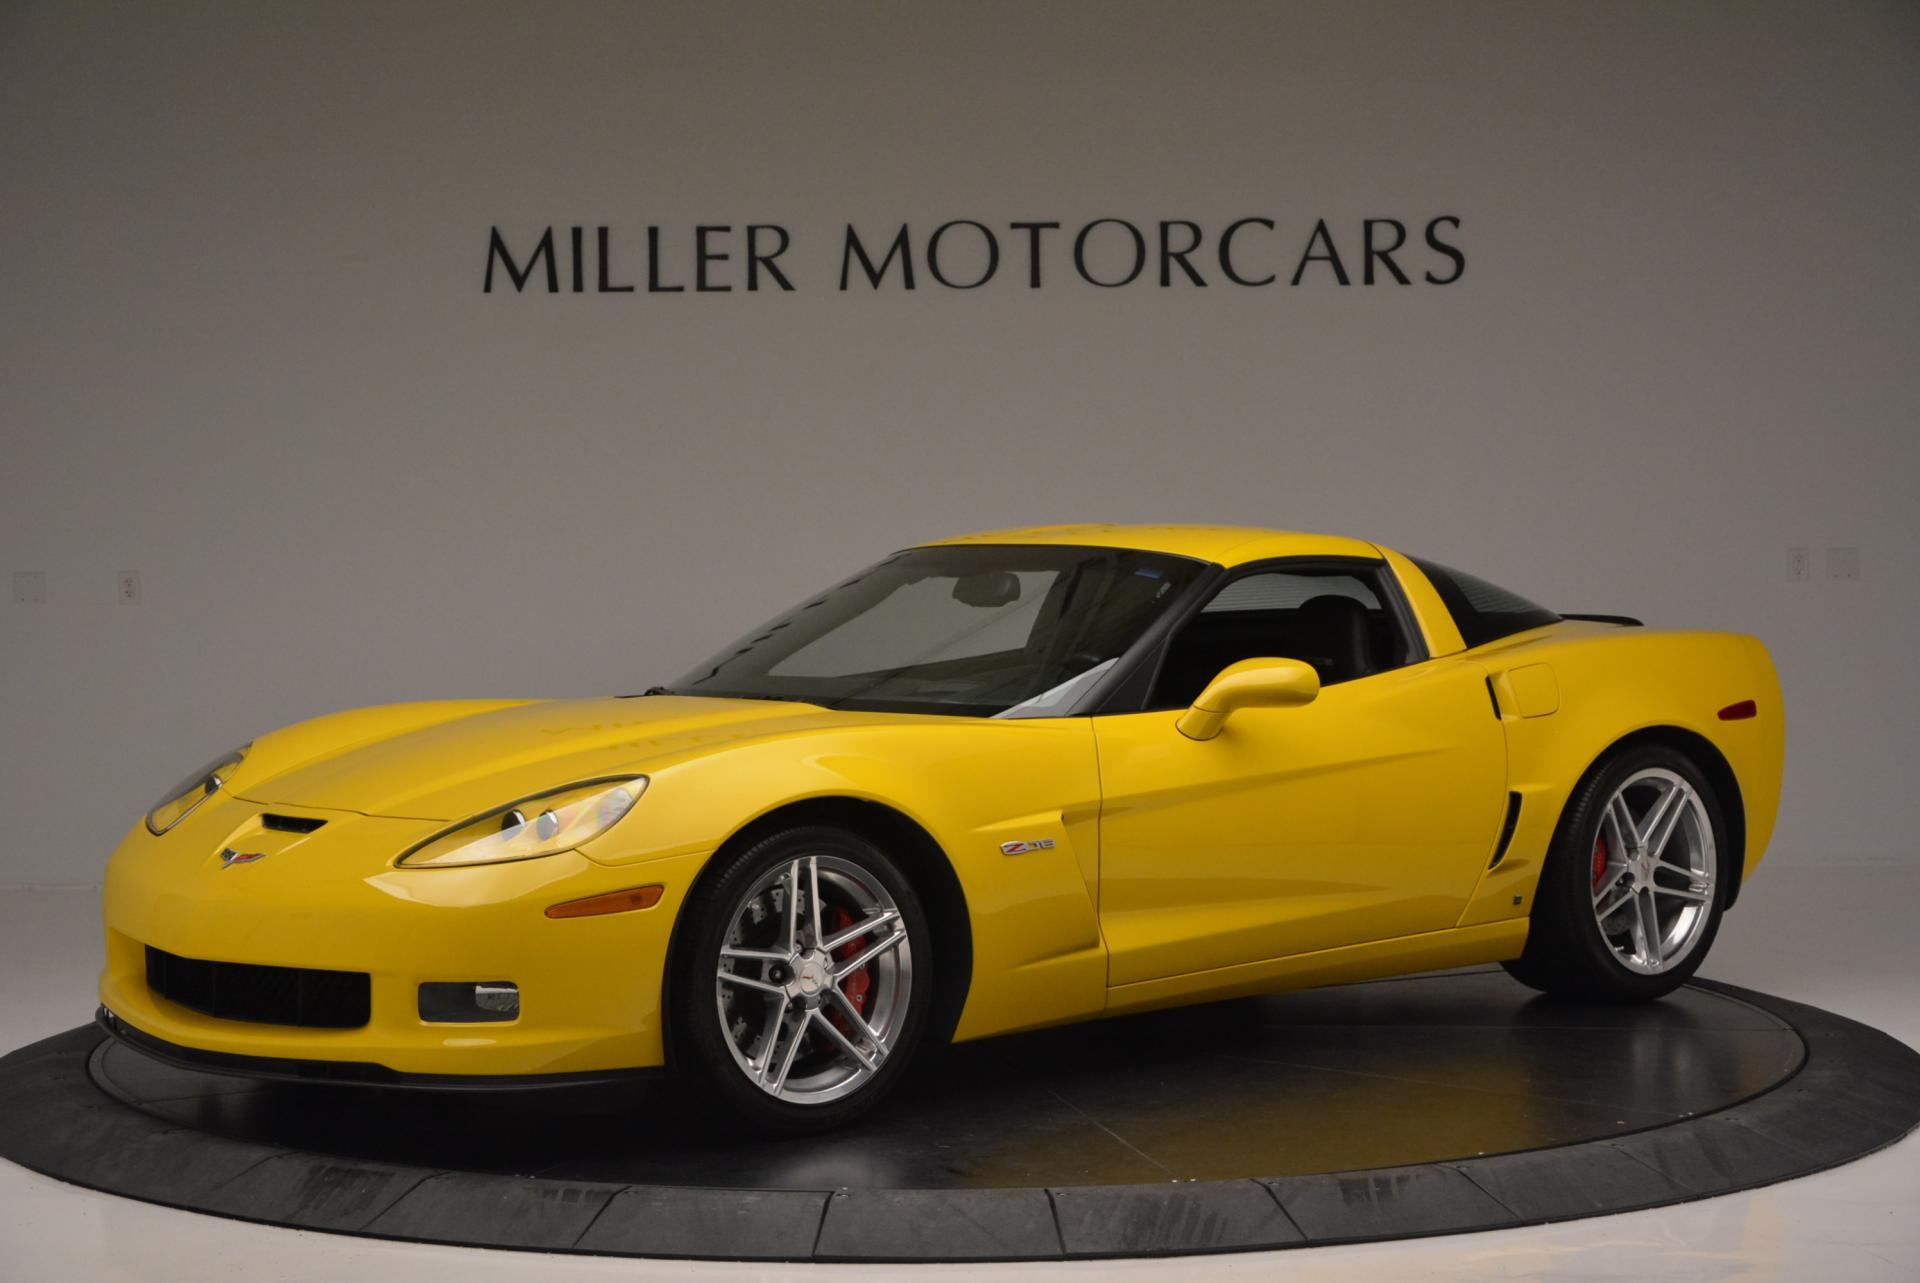 Used 2006 Chevrolet Corvette Z06 Hardtop for sale Sold at McLaren Greenwich in Greenwich CT 06830 1